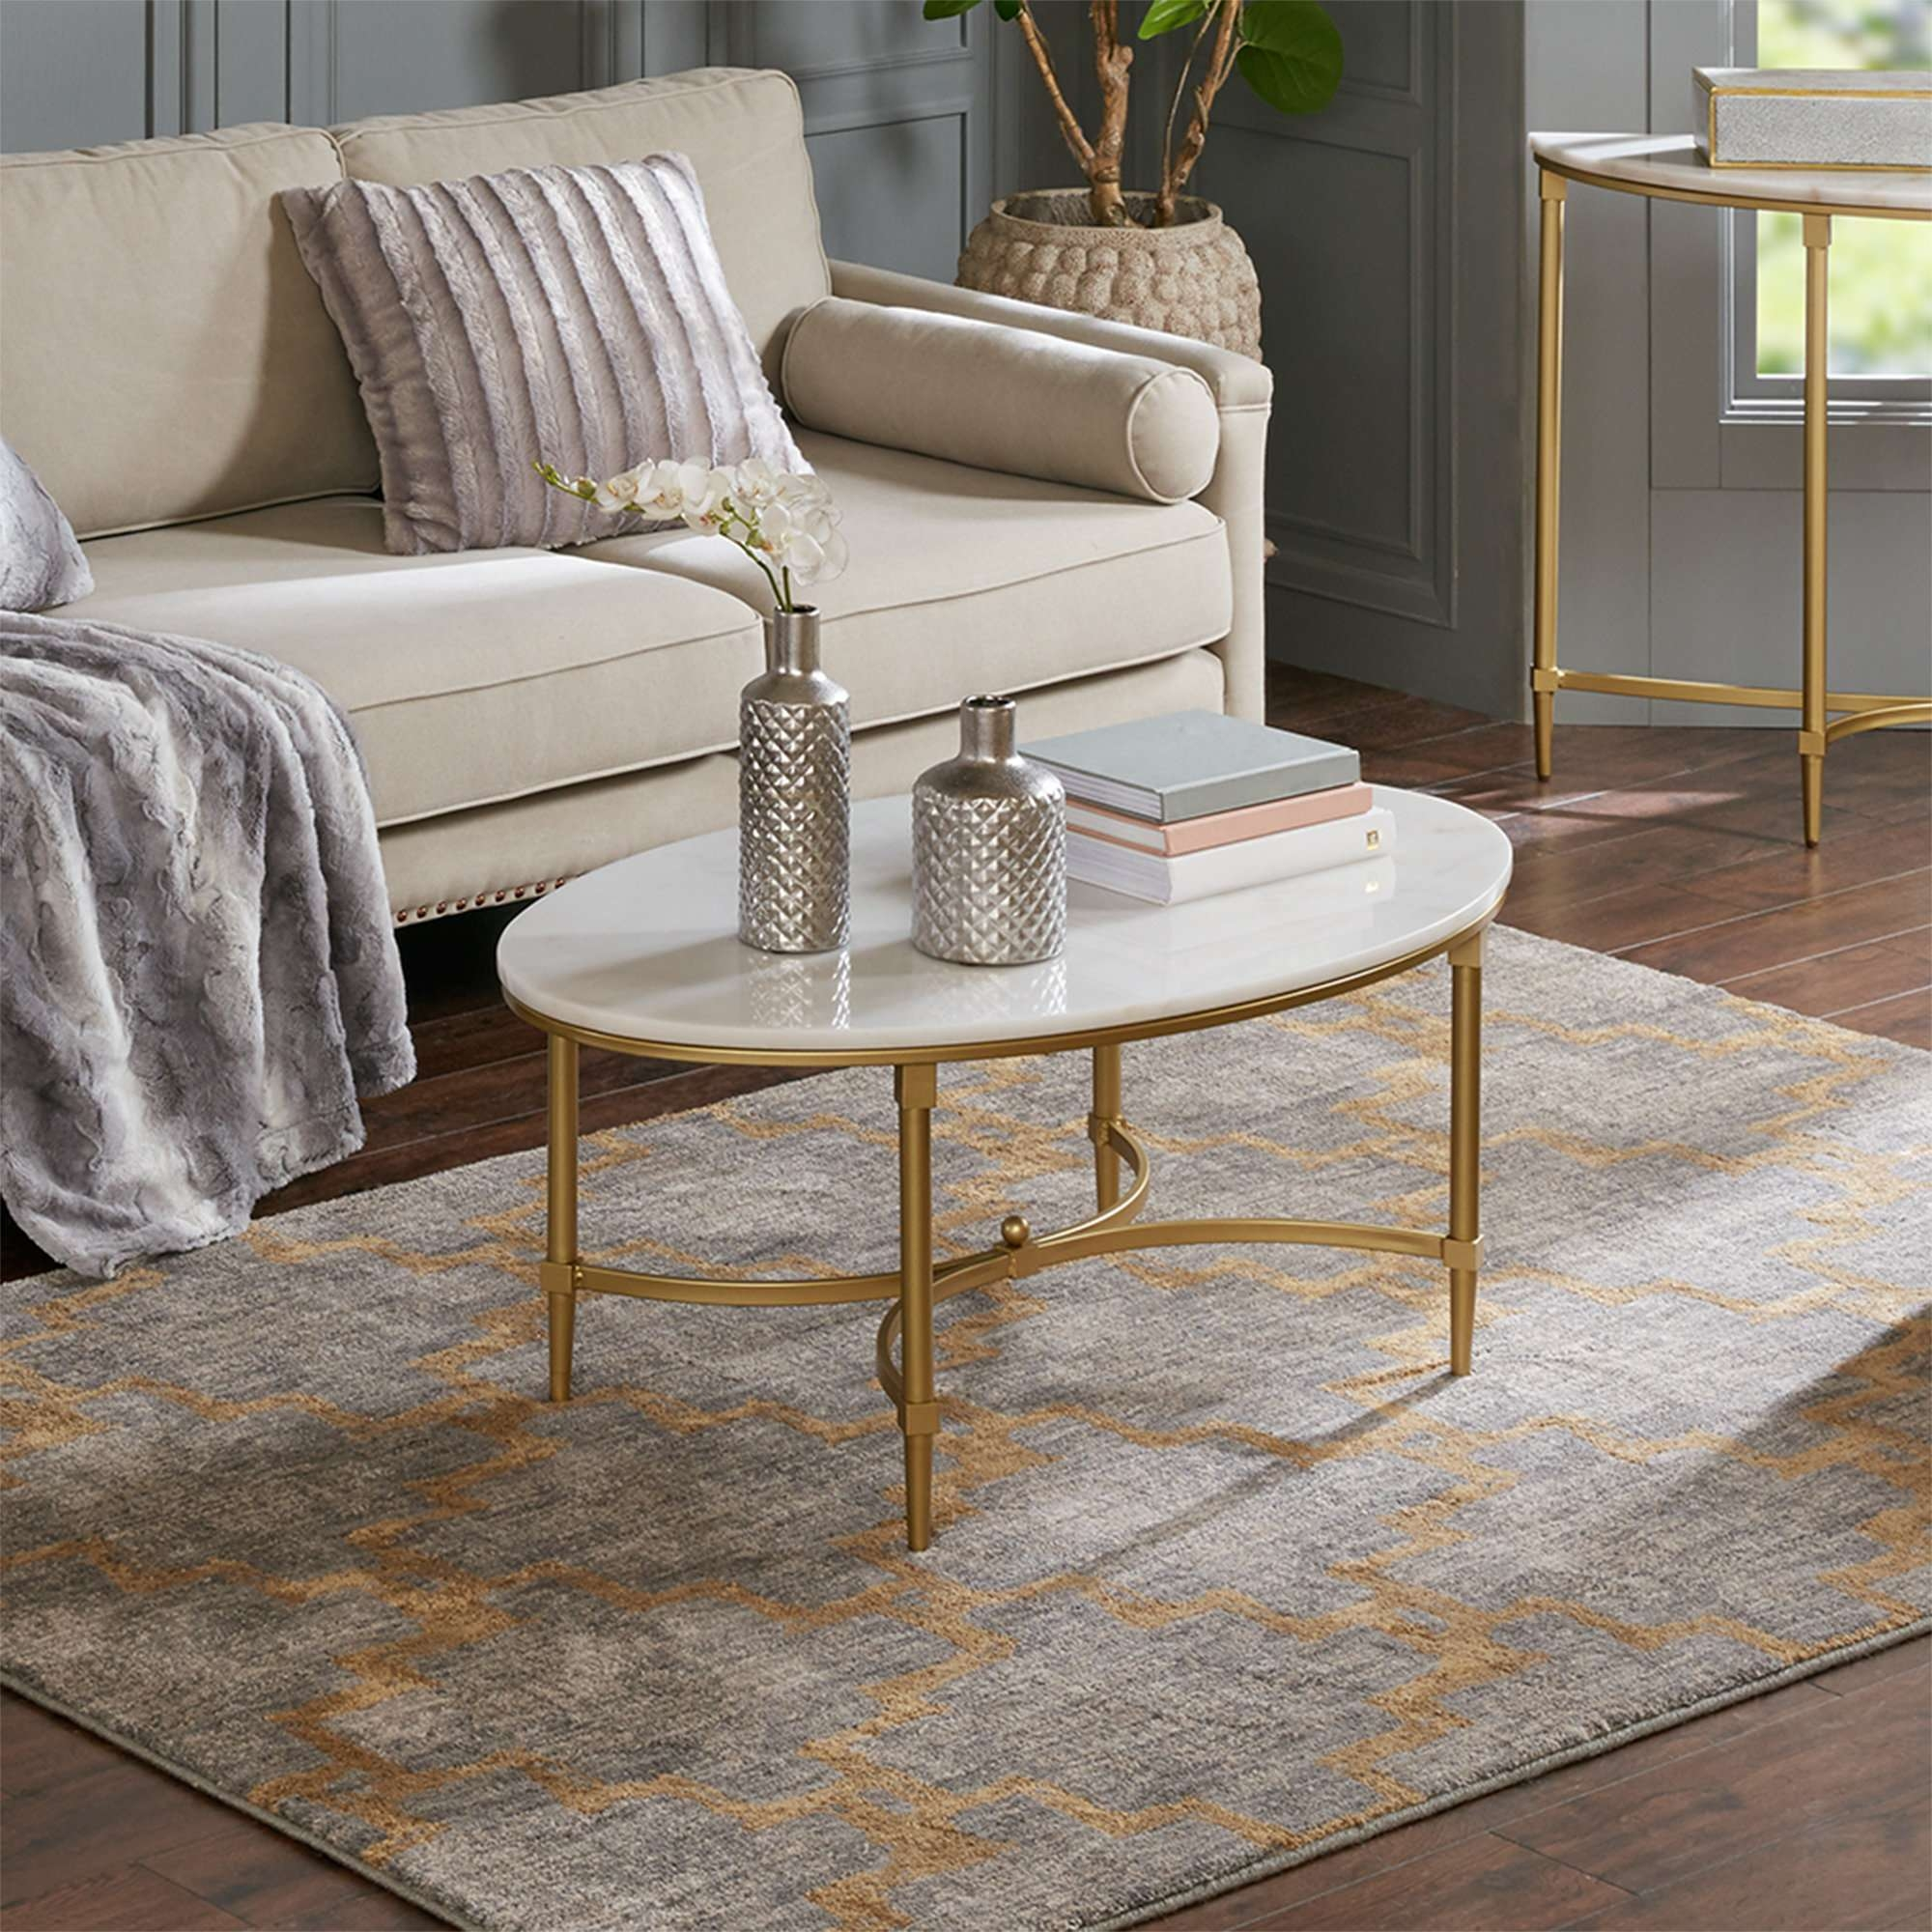 Wayfair With Regard To Widely Used Bordeaux Coffee Tables (View 18 of 20)